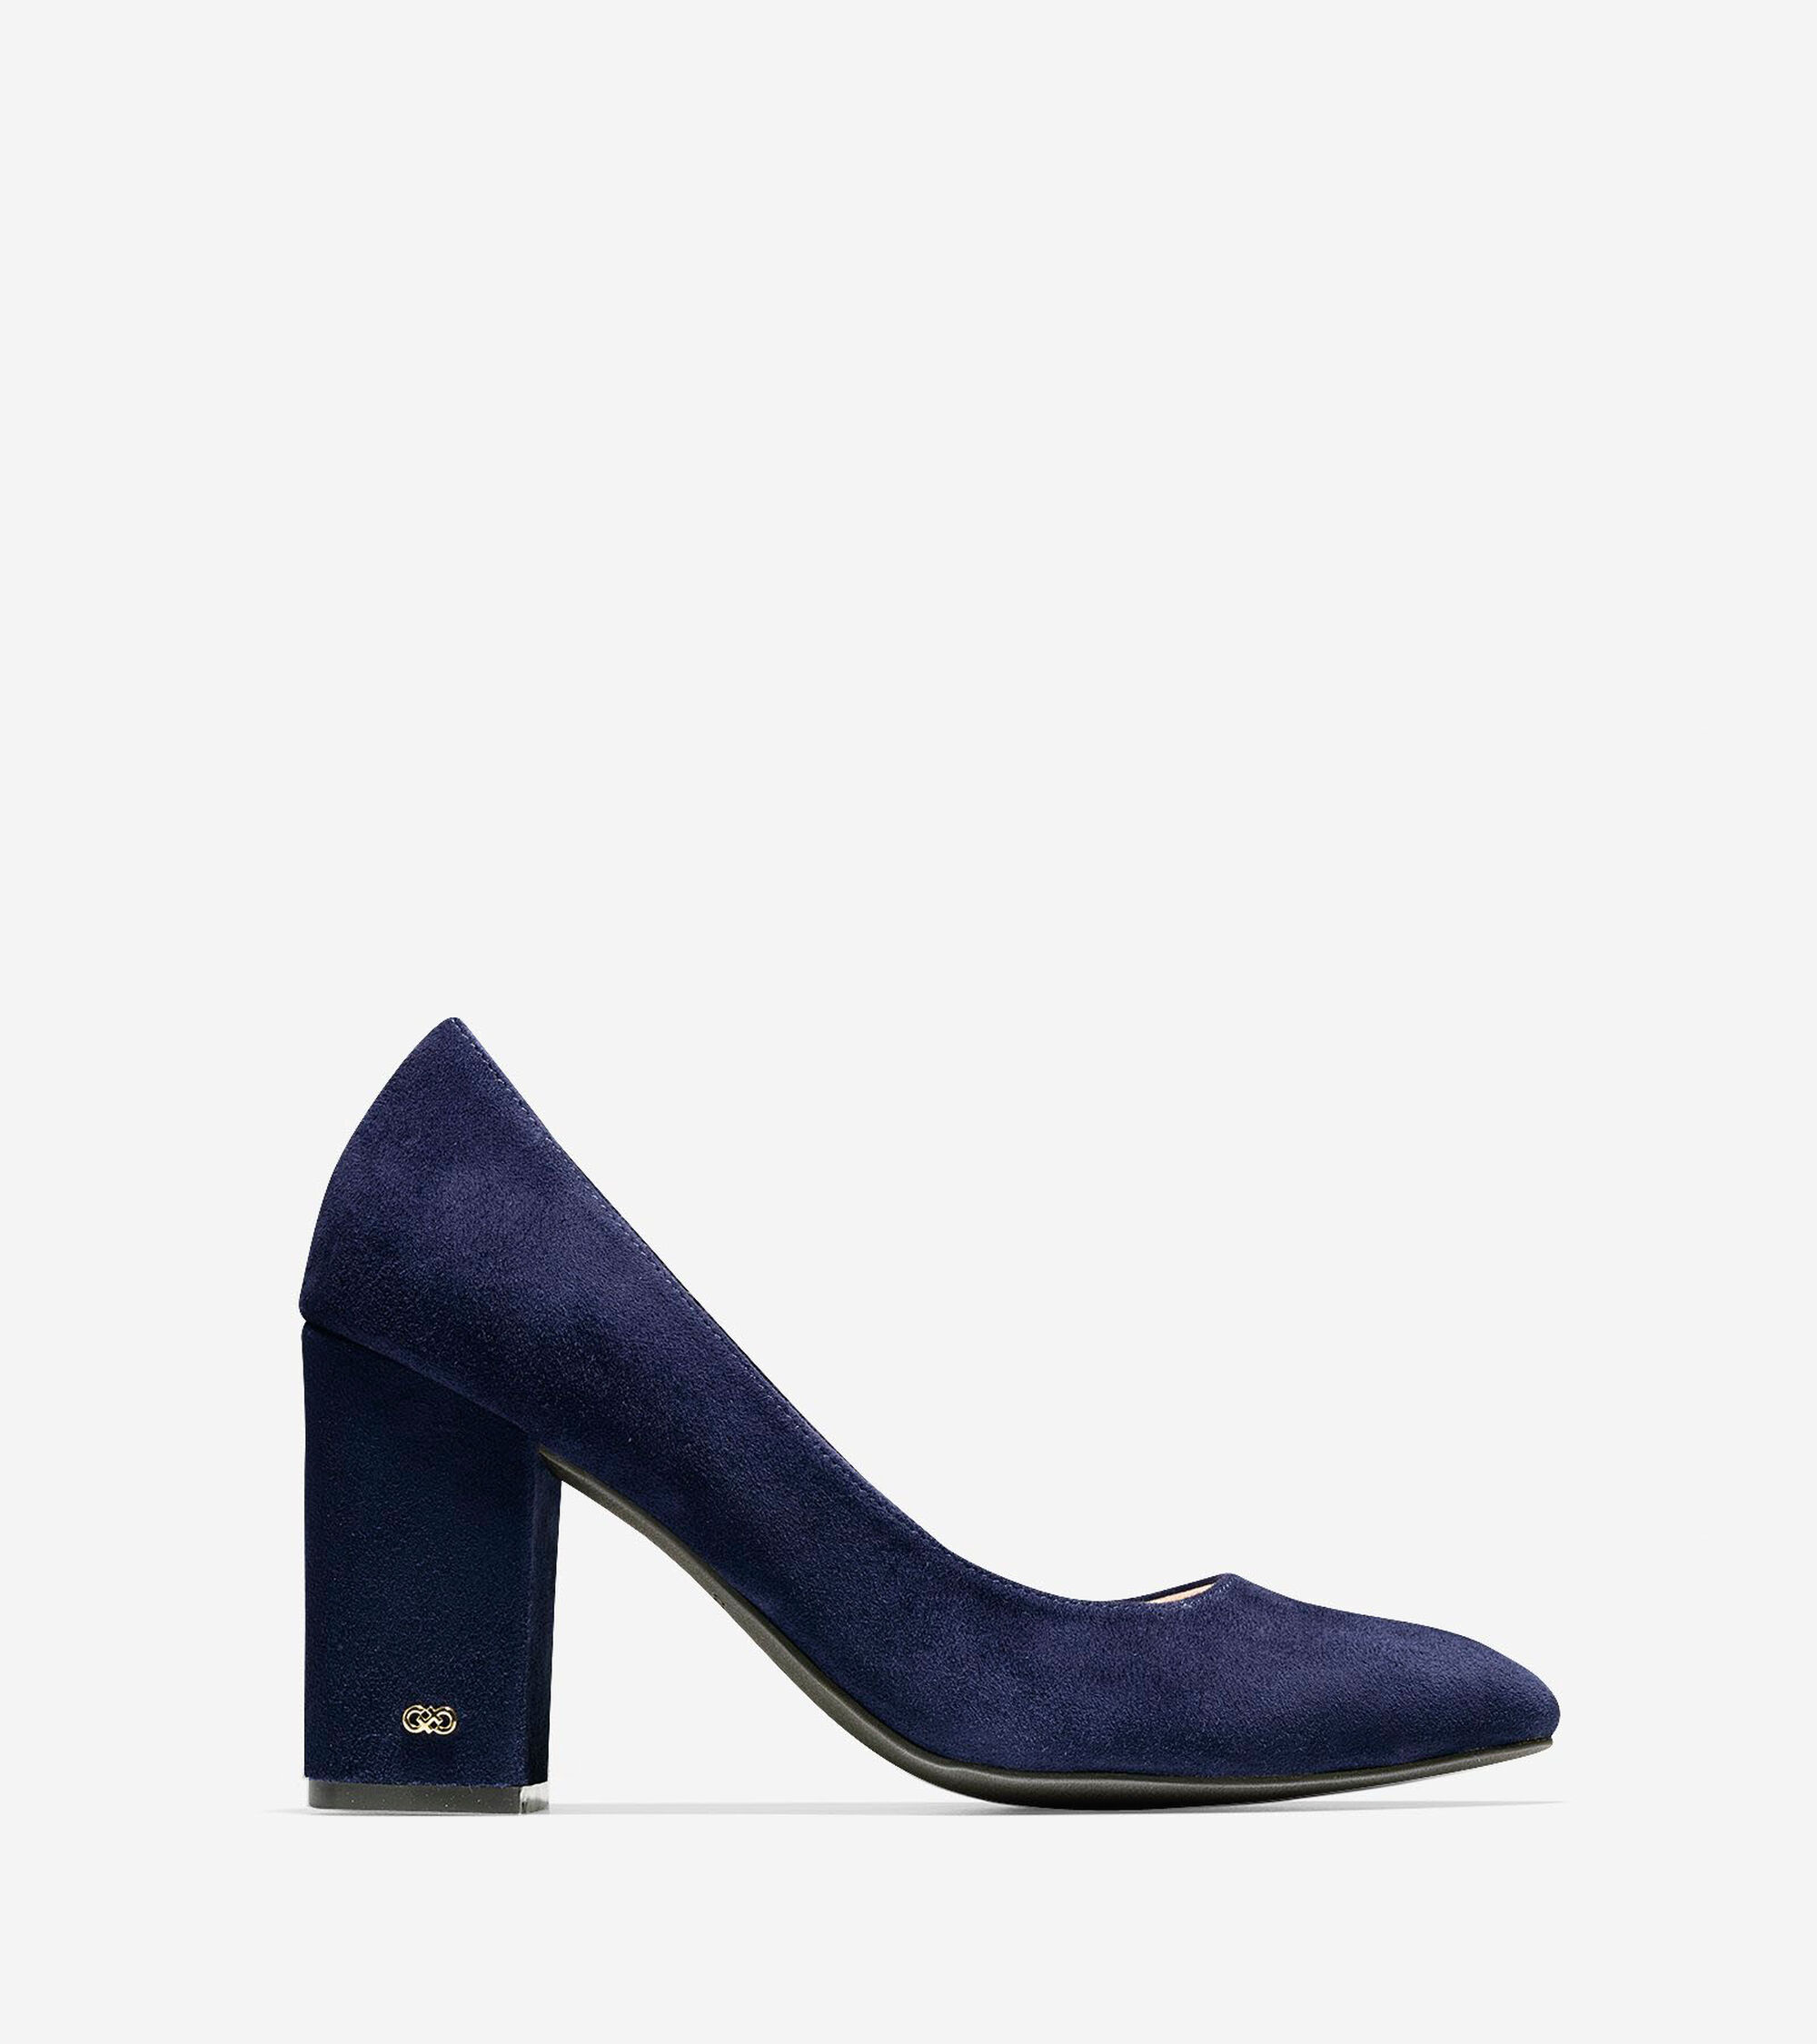 c4593755f75 Women s Alanna Pumps 85mm in Marine Blue Suede